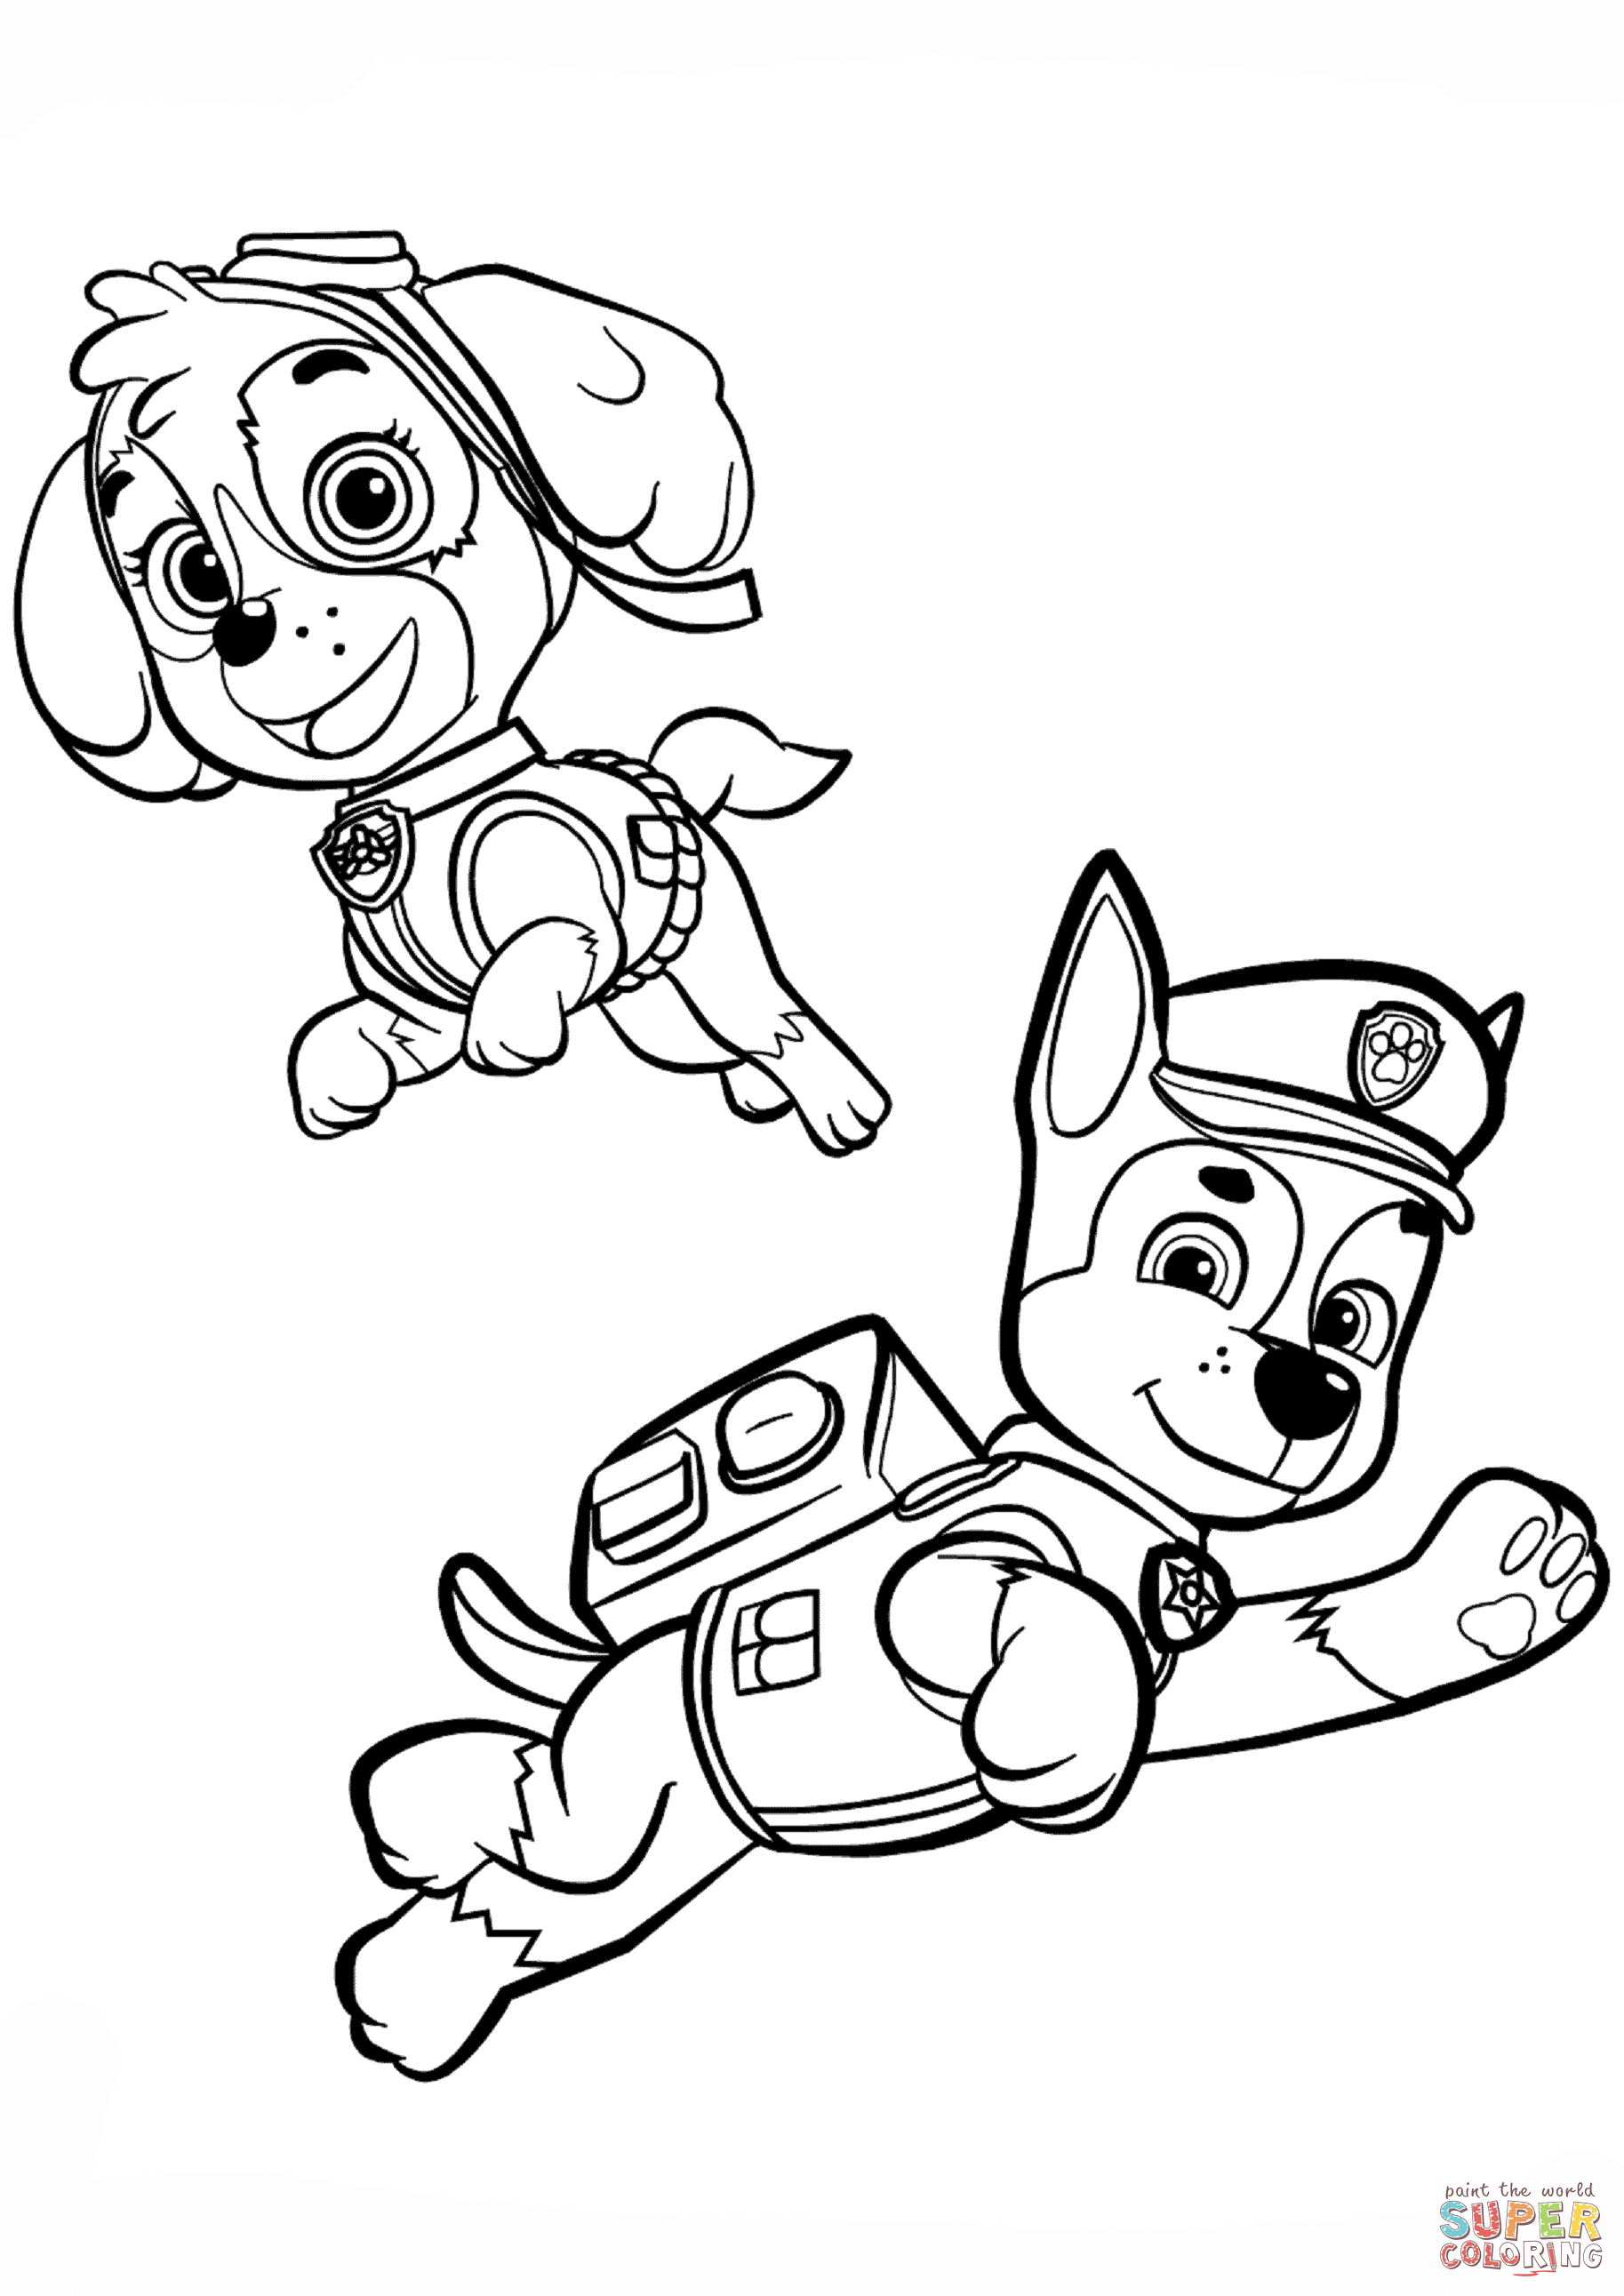 Chase And Skye Coloring Page Free Printable Coloring Pages Paw Patrol Coloring Pages Paw Patrol Coloring Skye Paw Patrol